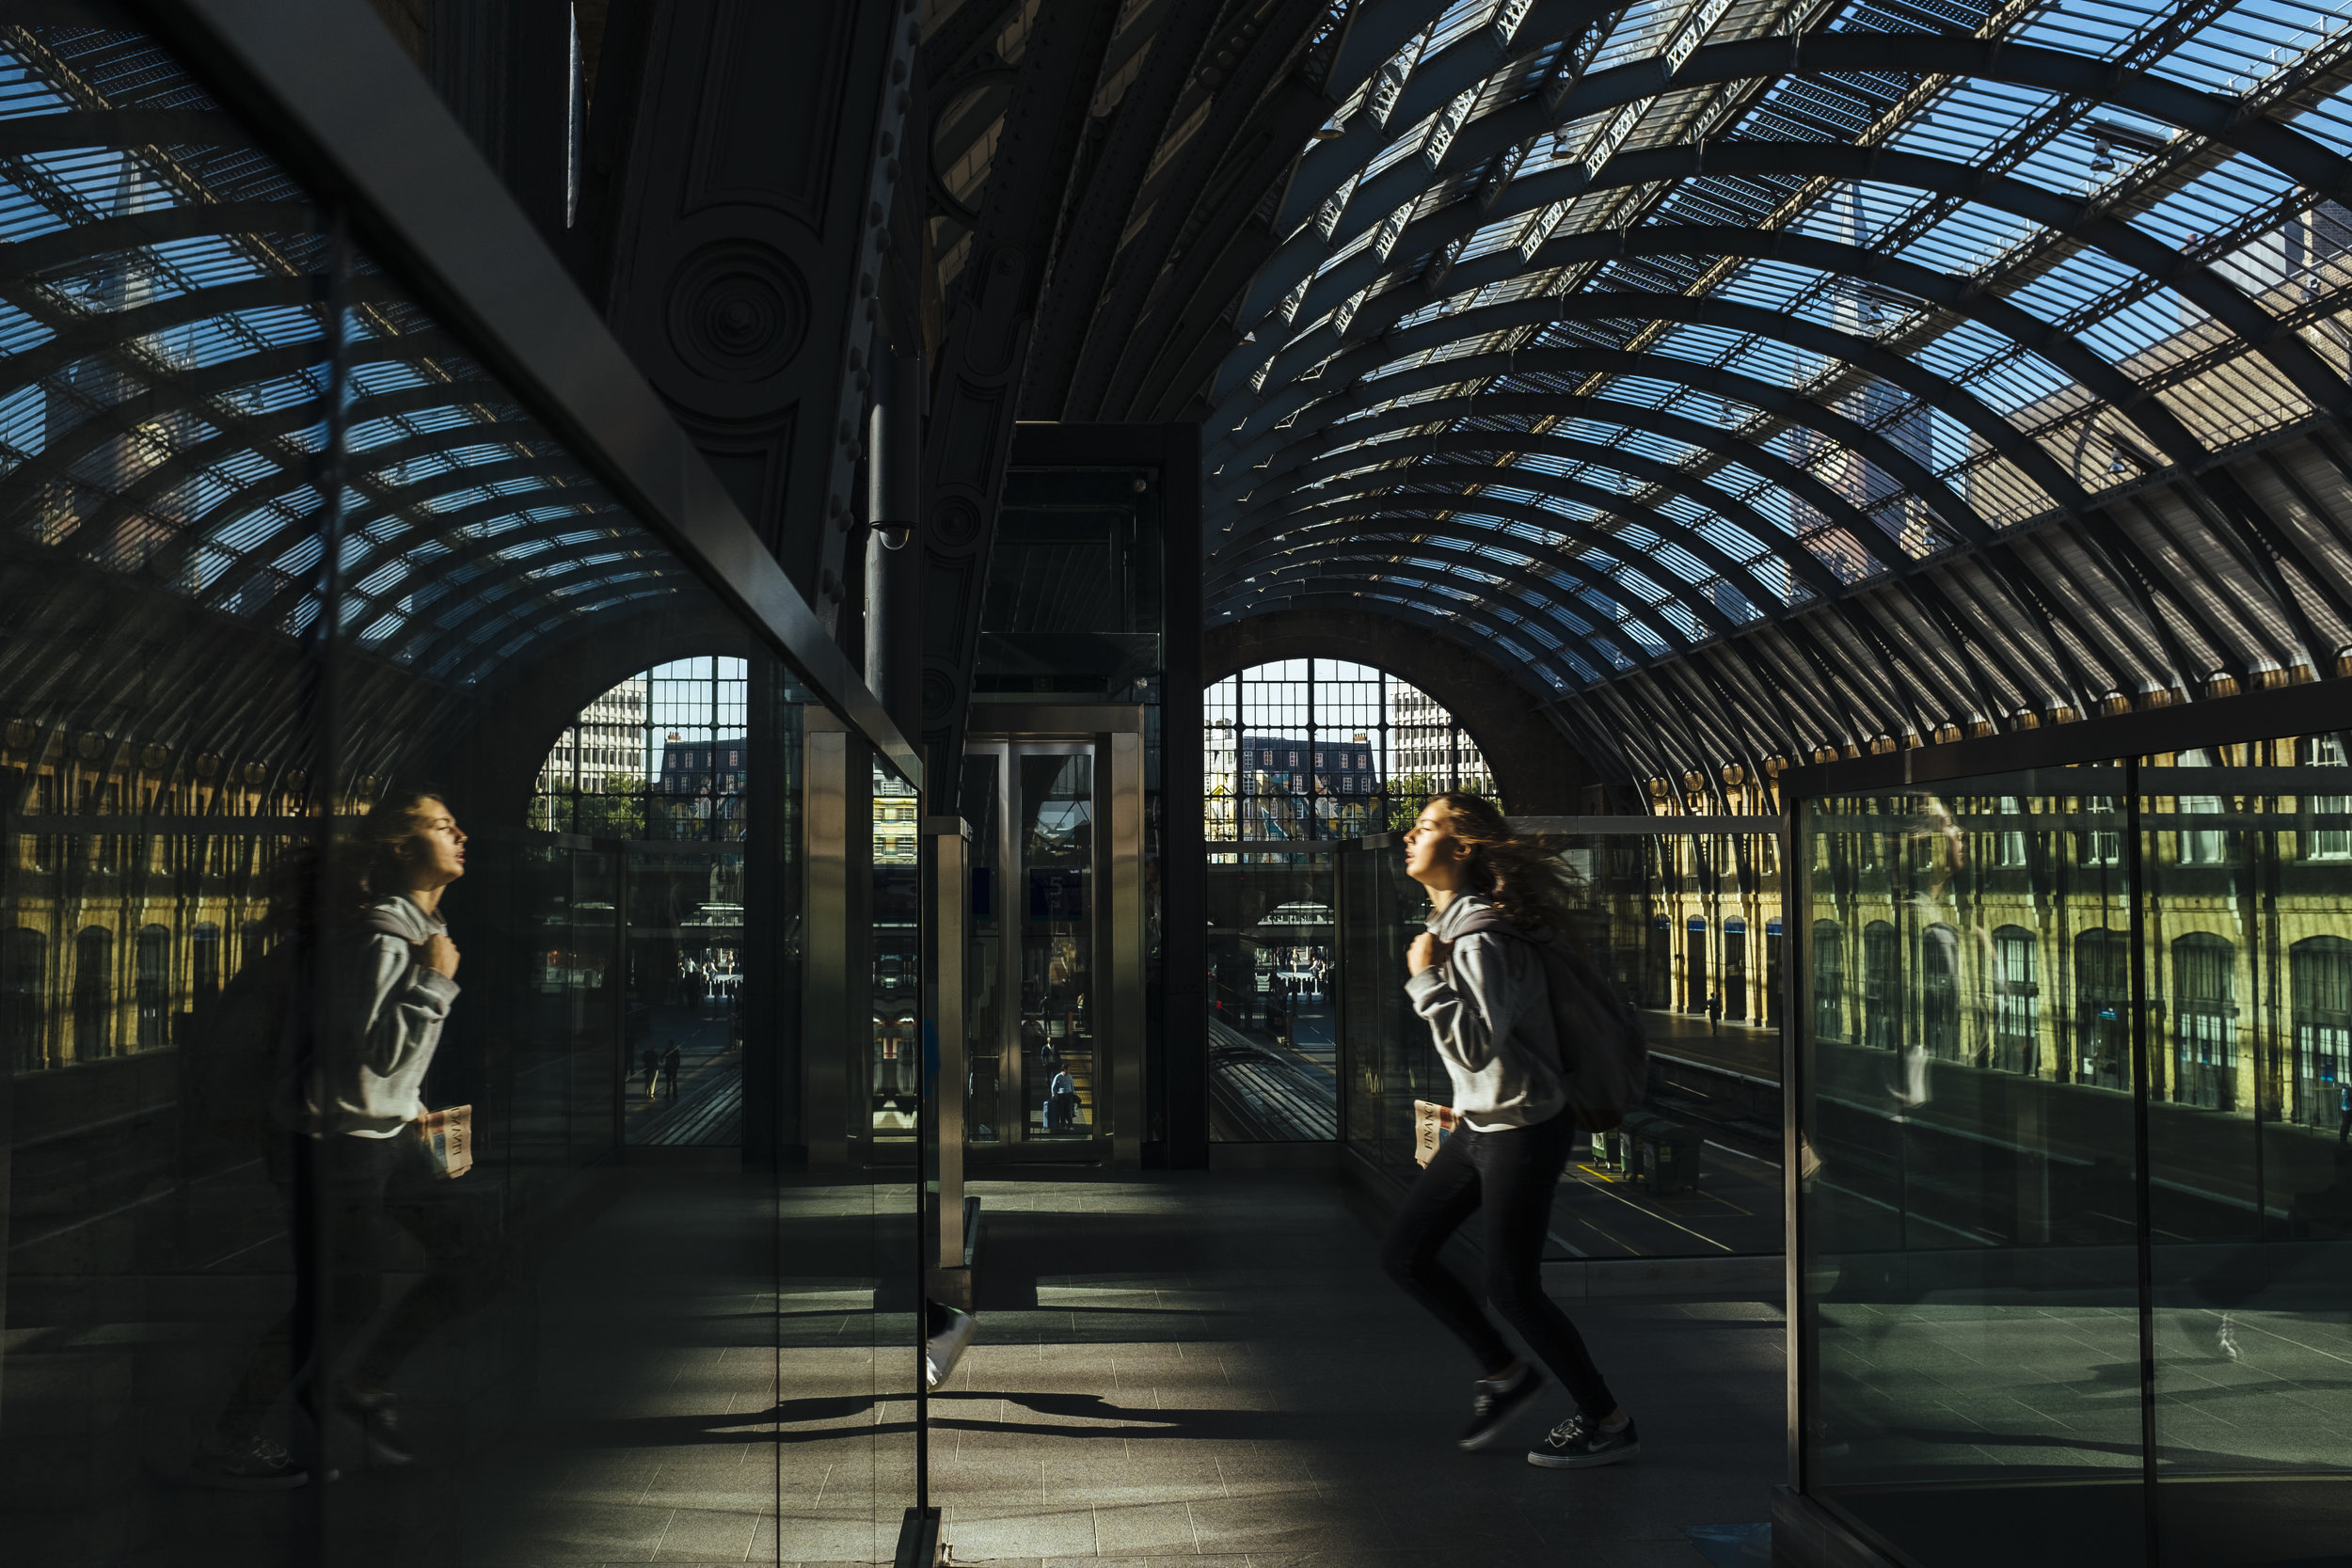 A passenger runs to catch a train at King's Cross railway station in London, Monday, Aug. 17, 2015.